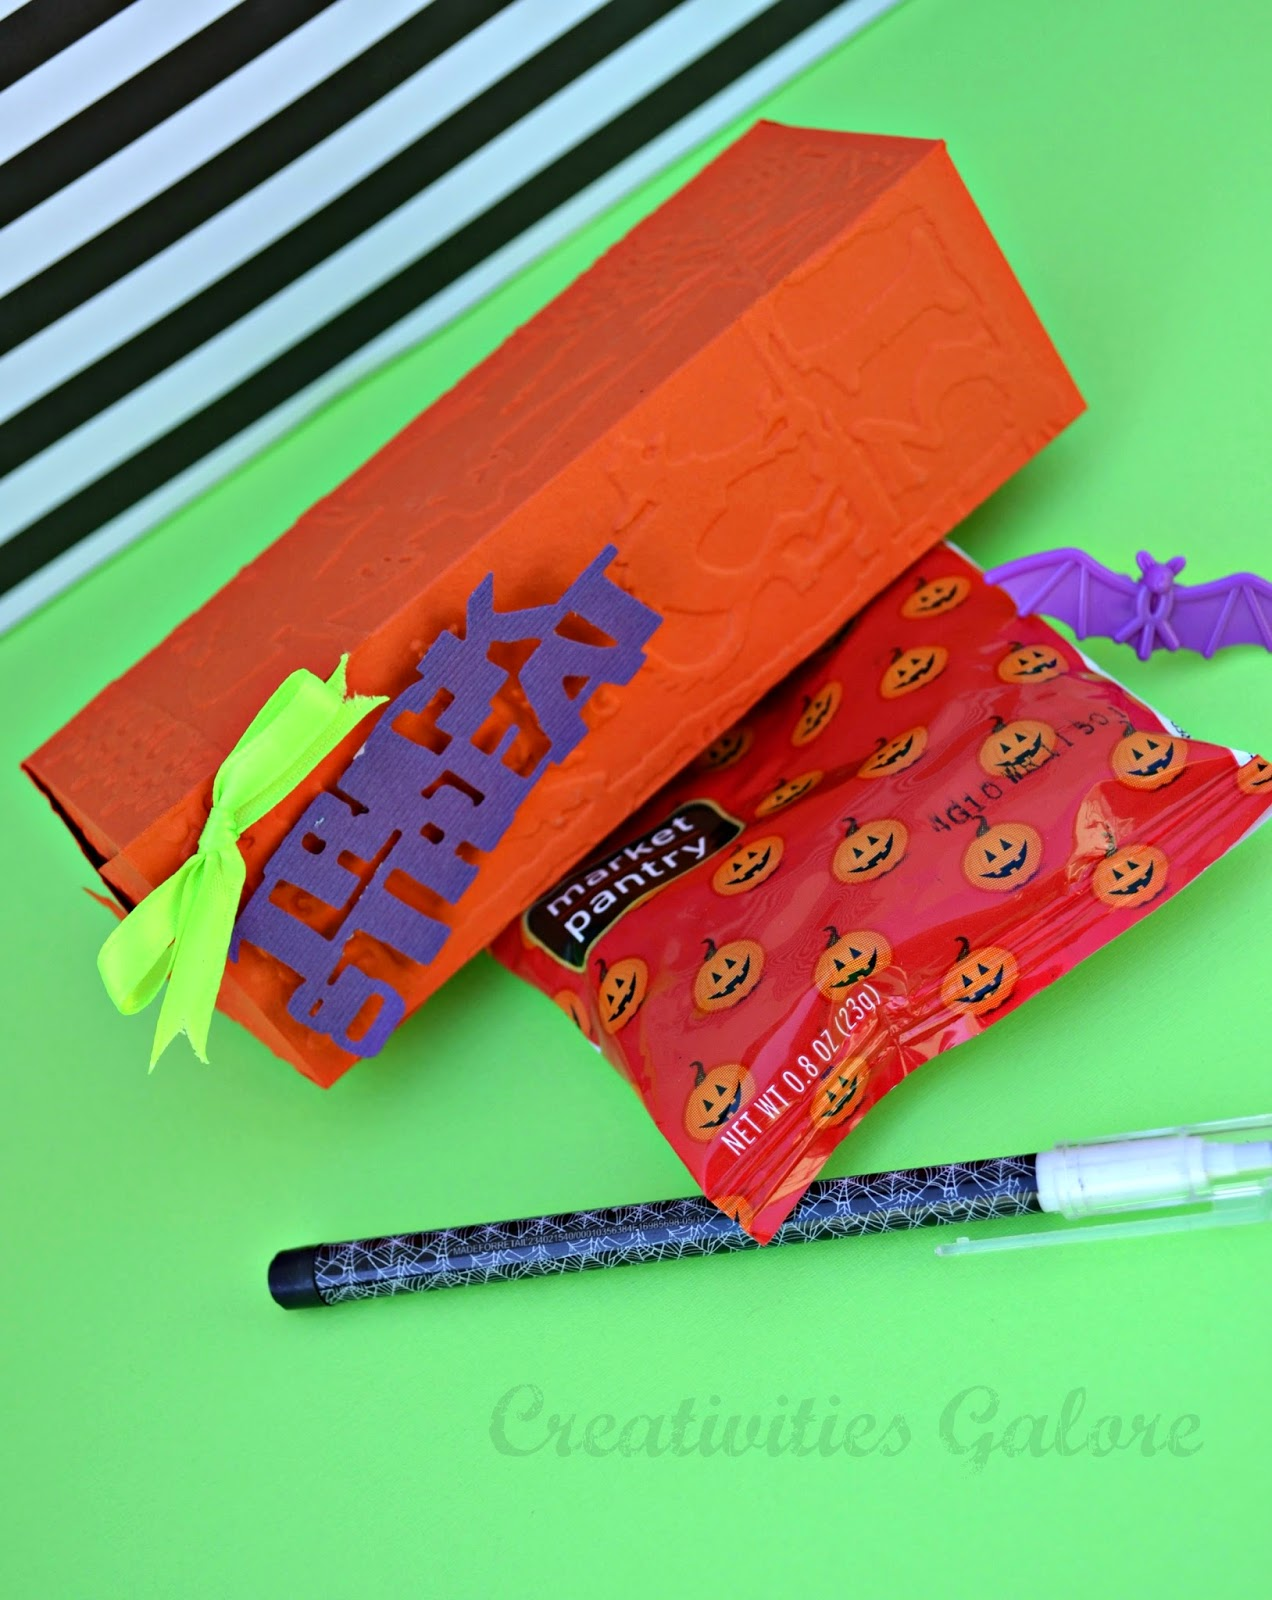 Creativities Galore: Sizzix DIY Halloween Treat Box